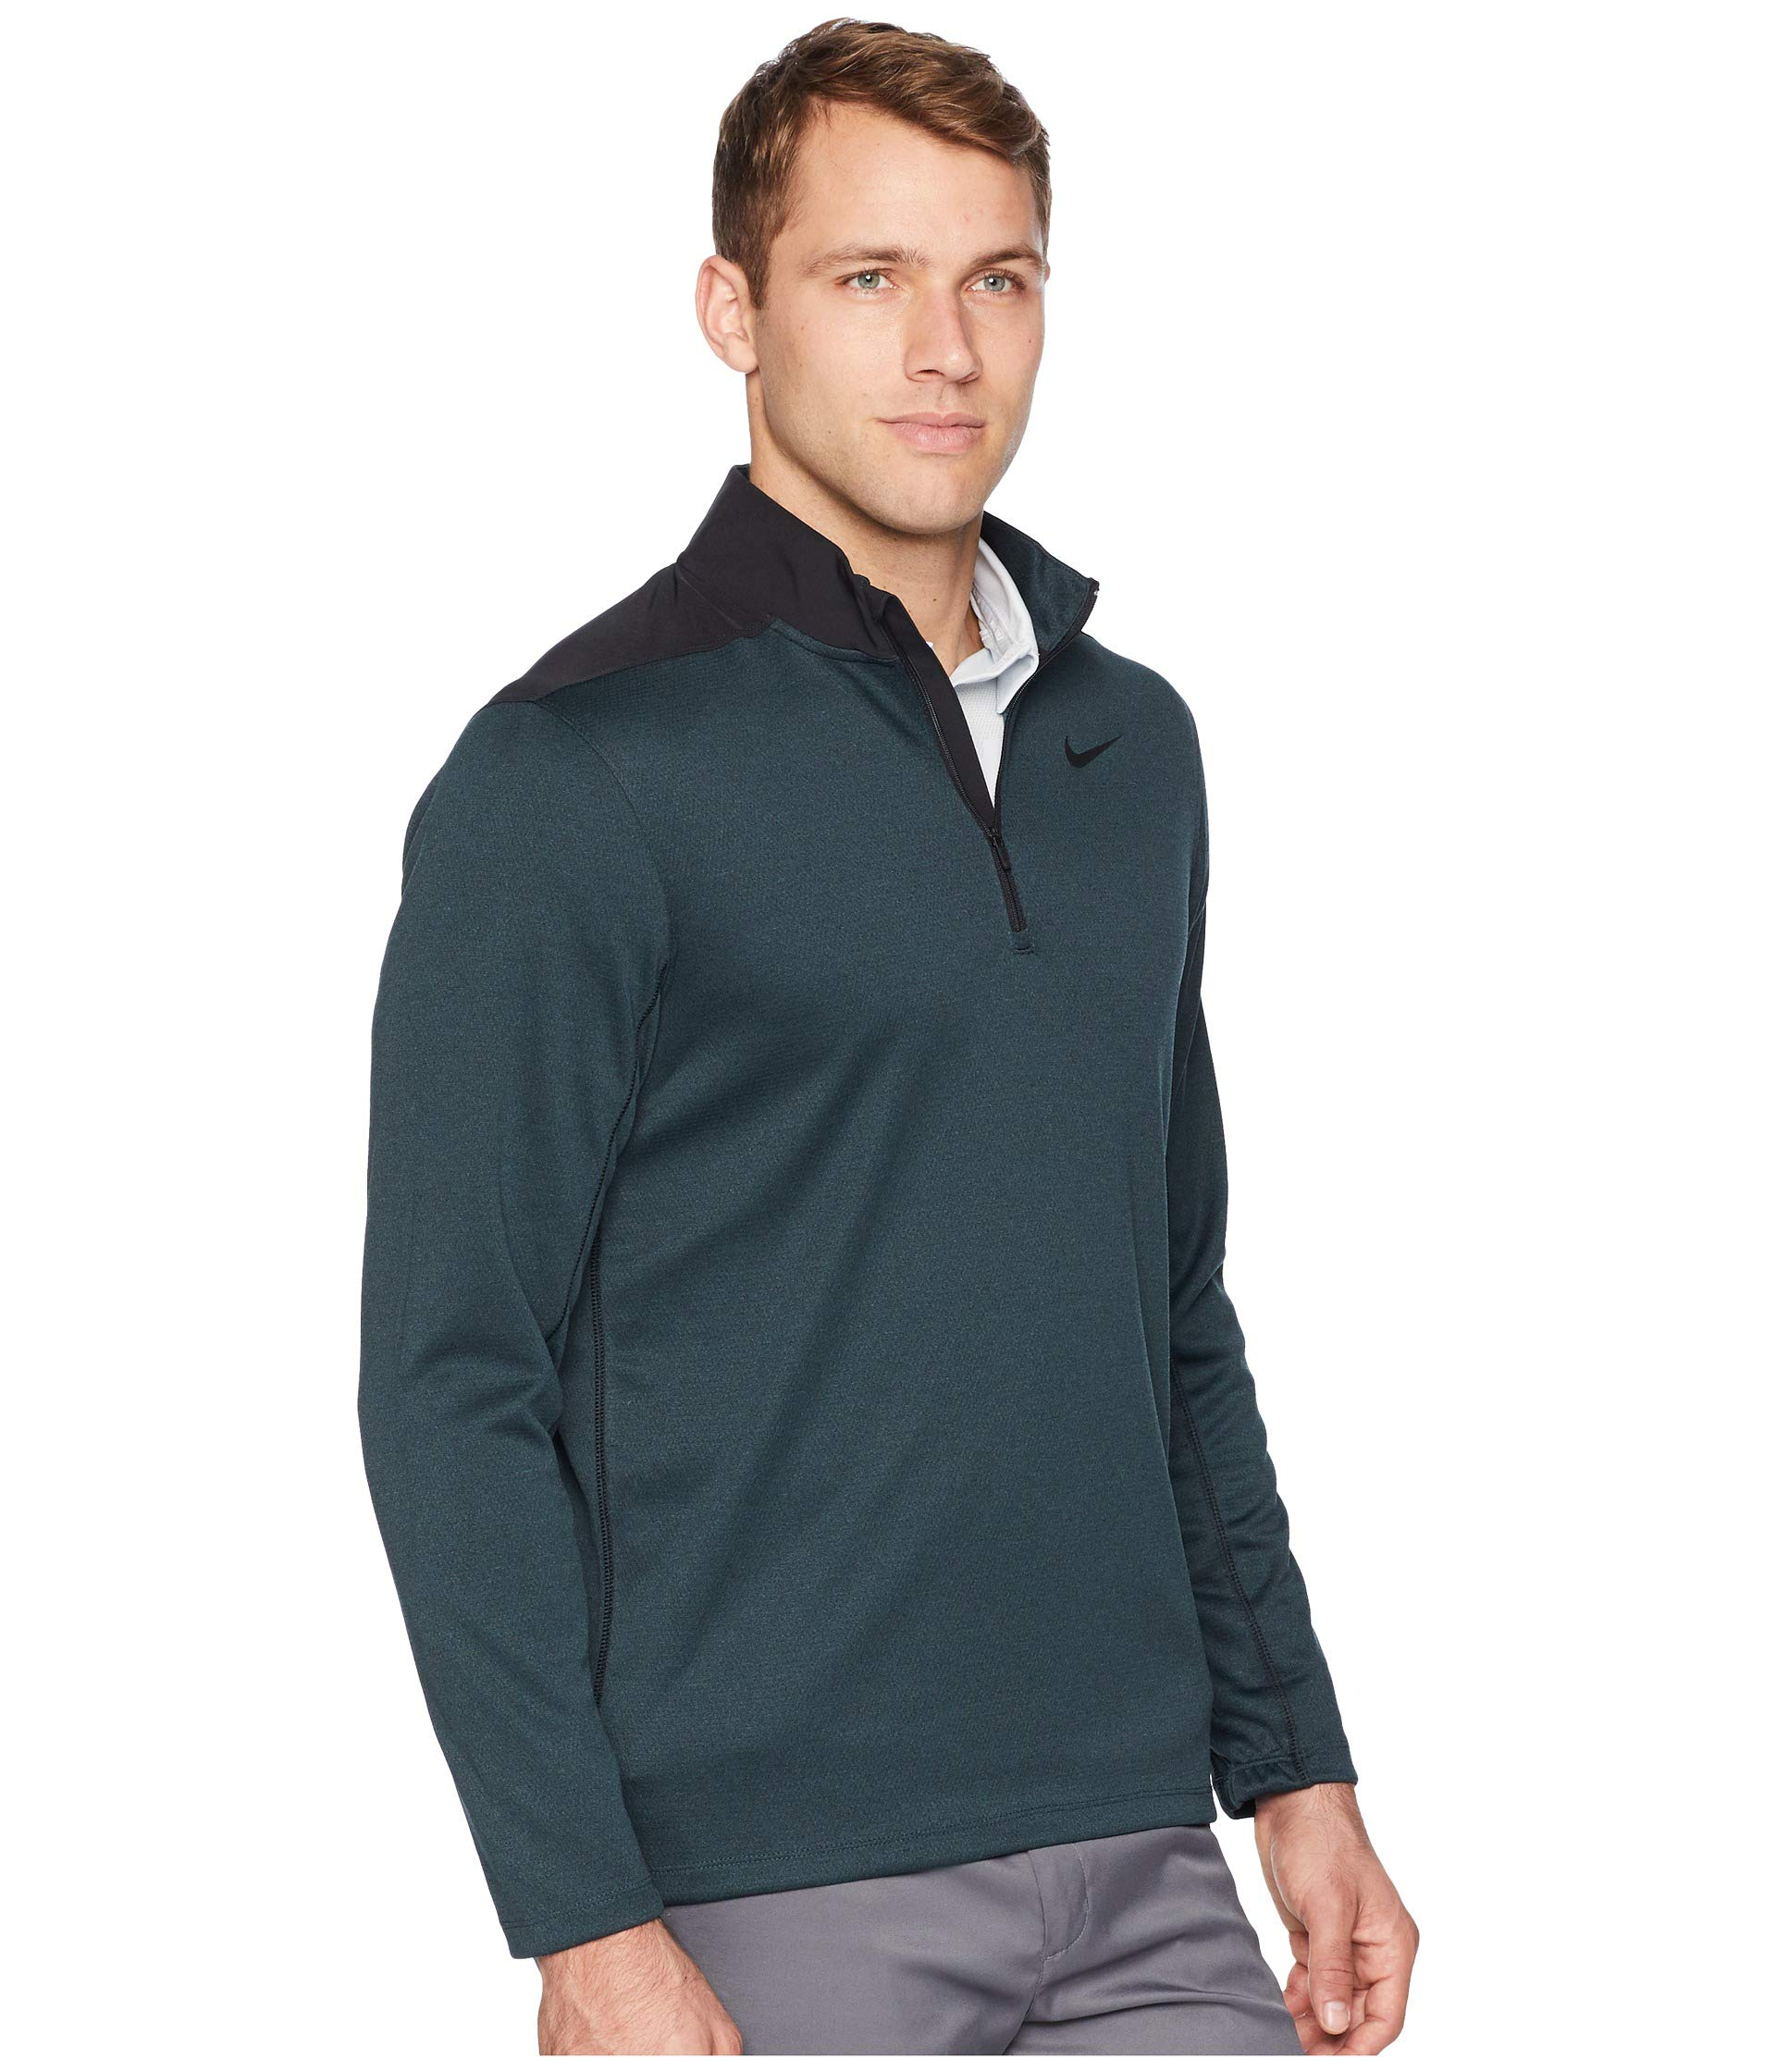 Nike Men's Dry Top Half Zip core Golf Top (Black Midnight Spruce, Small) by Nike (Image #4)